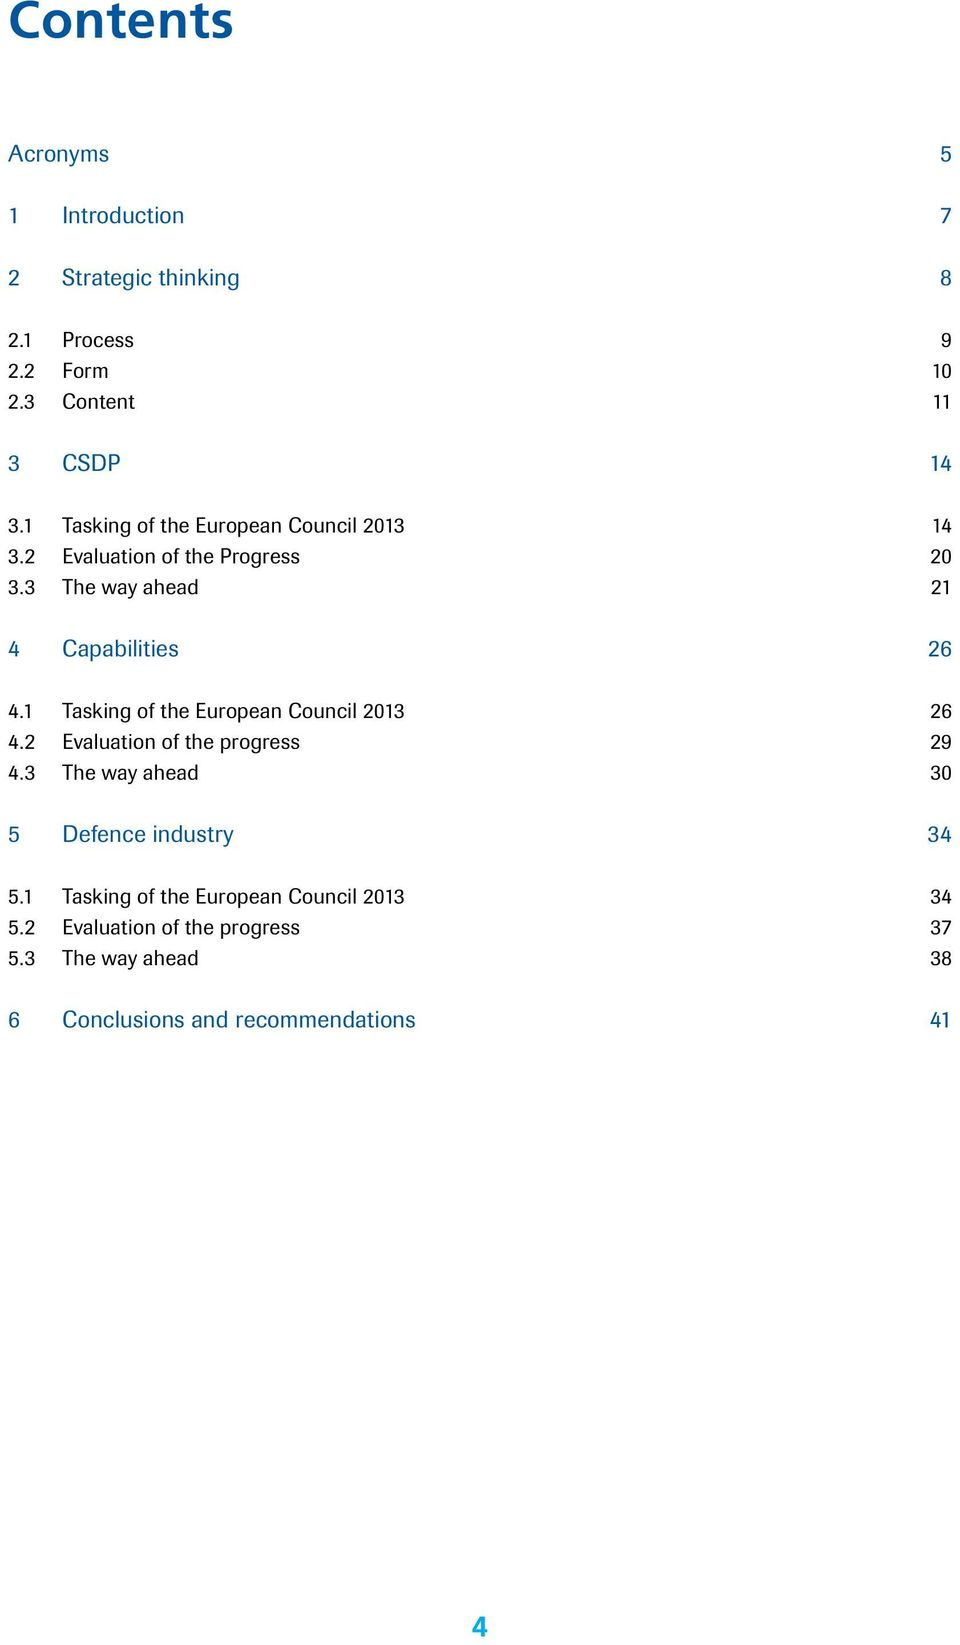 1 Tasking of the European Council 2013 26 4.2 Evaluation of the progress 29 4.3 The way ahead 30 5 Defence industry 34 5.